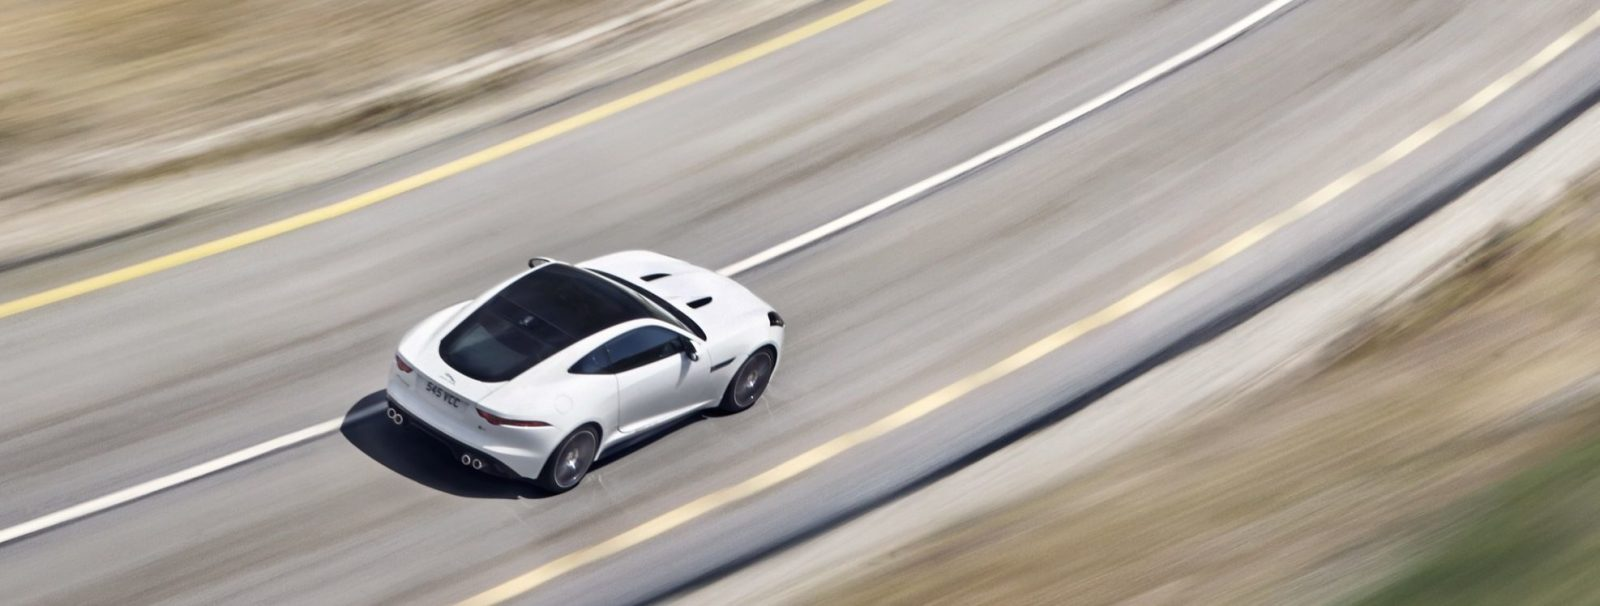 Jaguar Makes a WINNER!  2015 F-type R Coupe Debut11